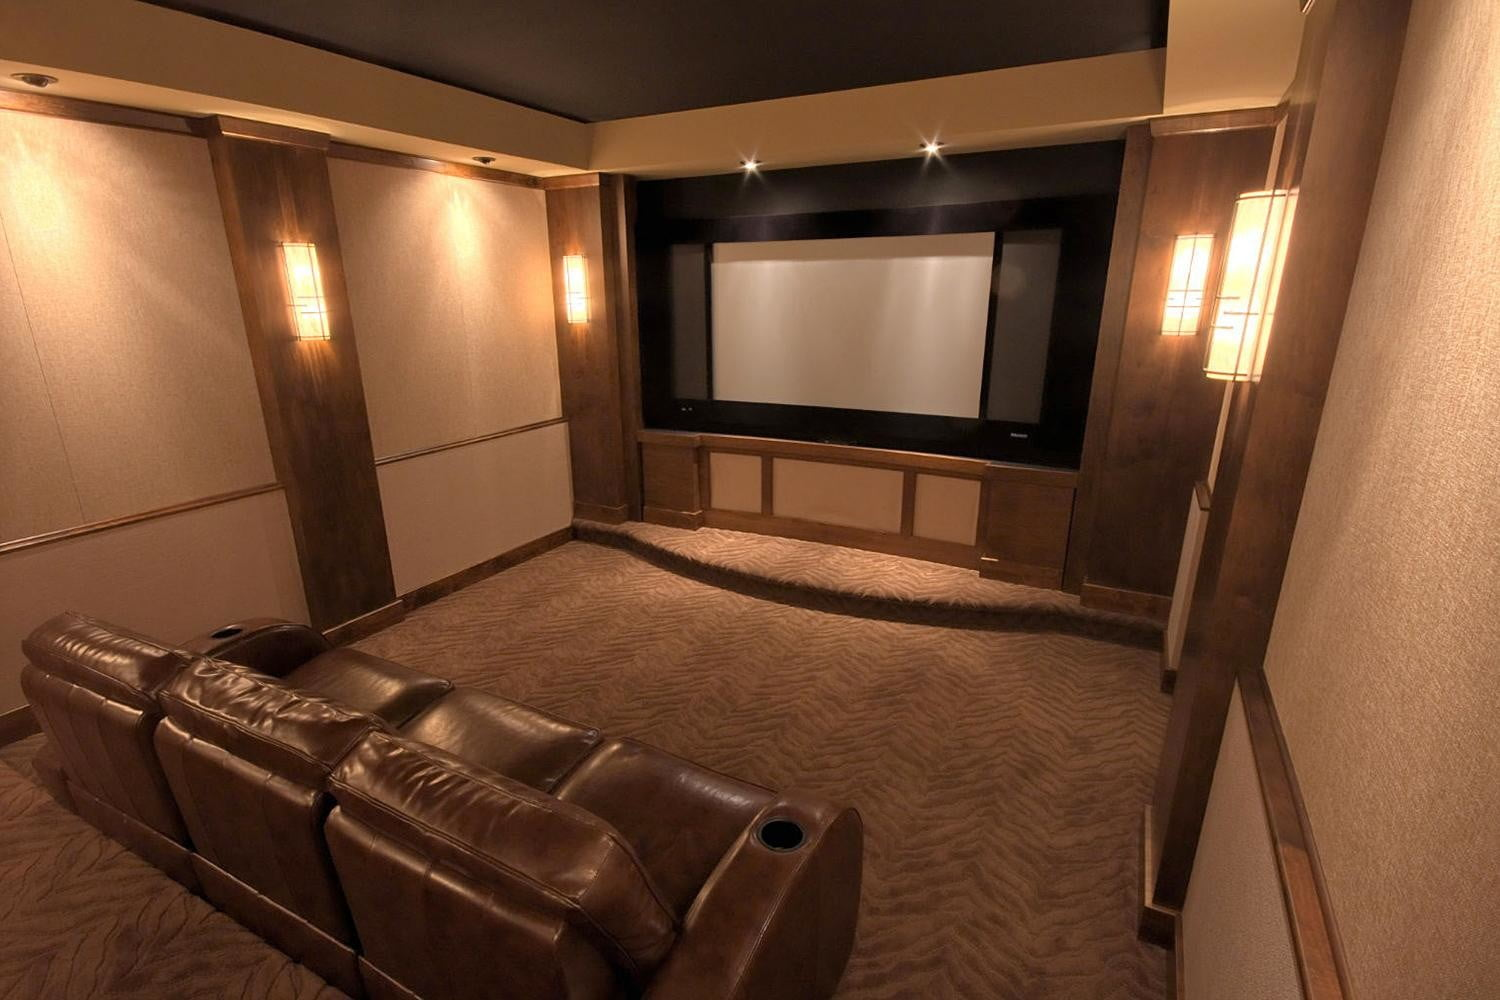 How to choose a projection screen | Digital Trends